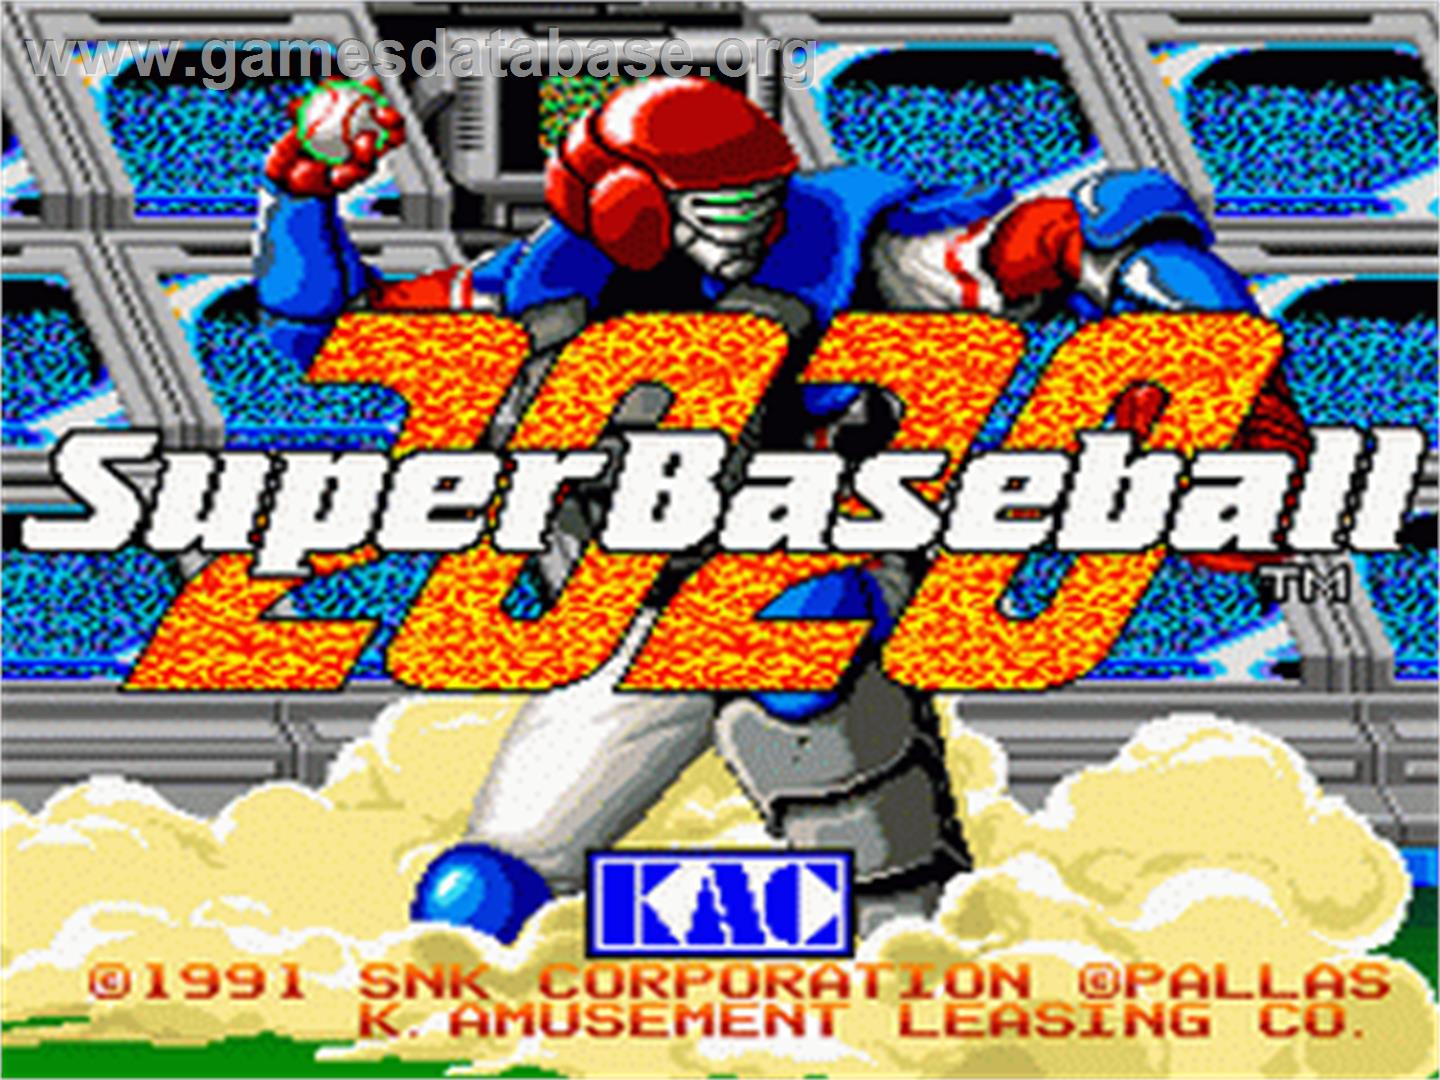 2020 Super Baseball - Nintendo SNES - Artwork - Title Screen